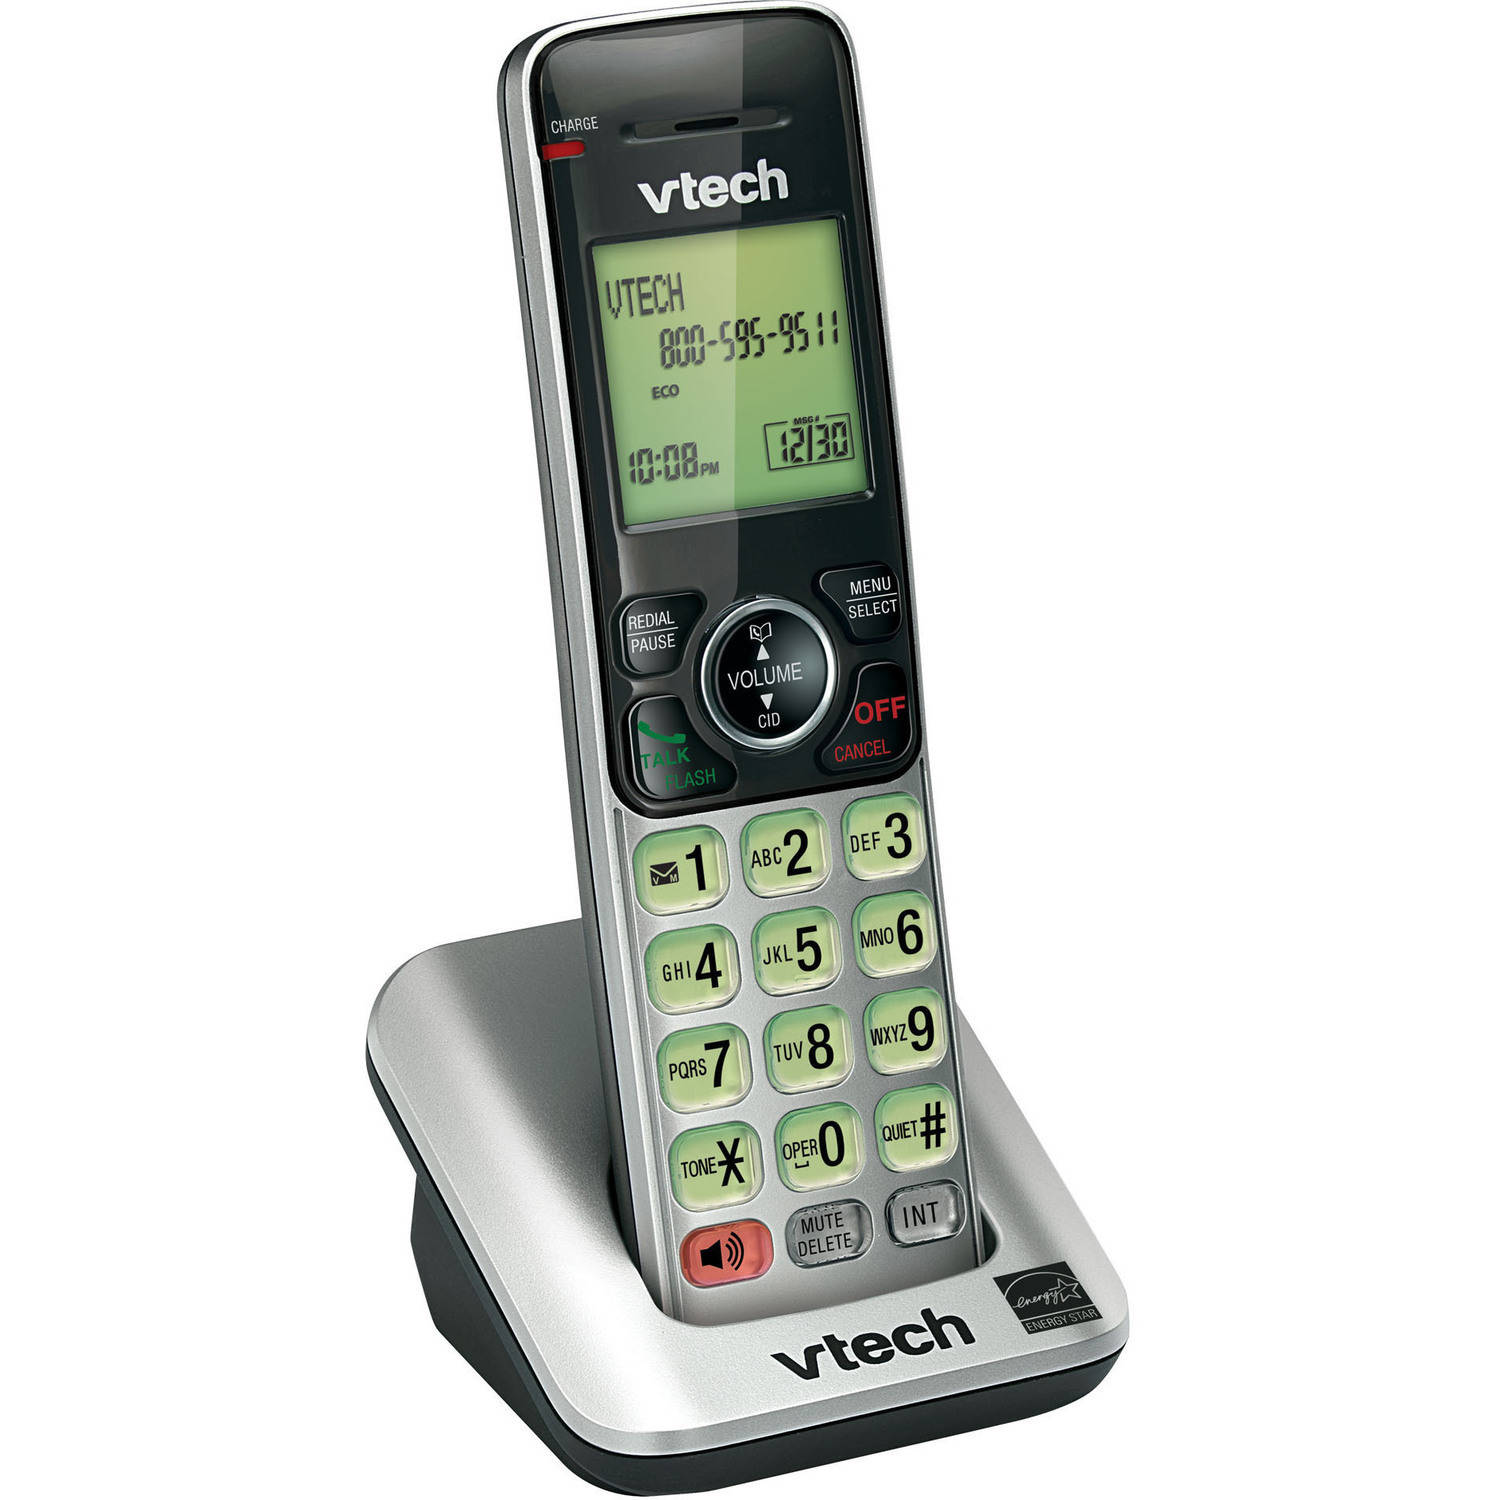 VTech CS6609 DECT 6.0 Accessory Handset for VTech CS6619, CS6629, CS6648 or CS6649, Silver/Black